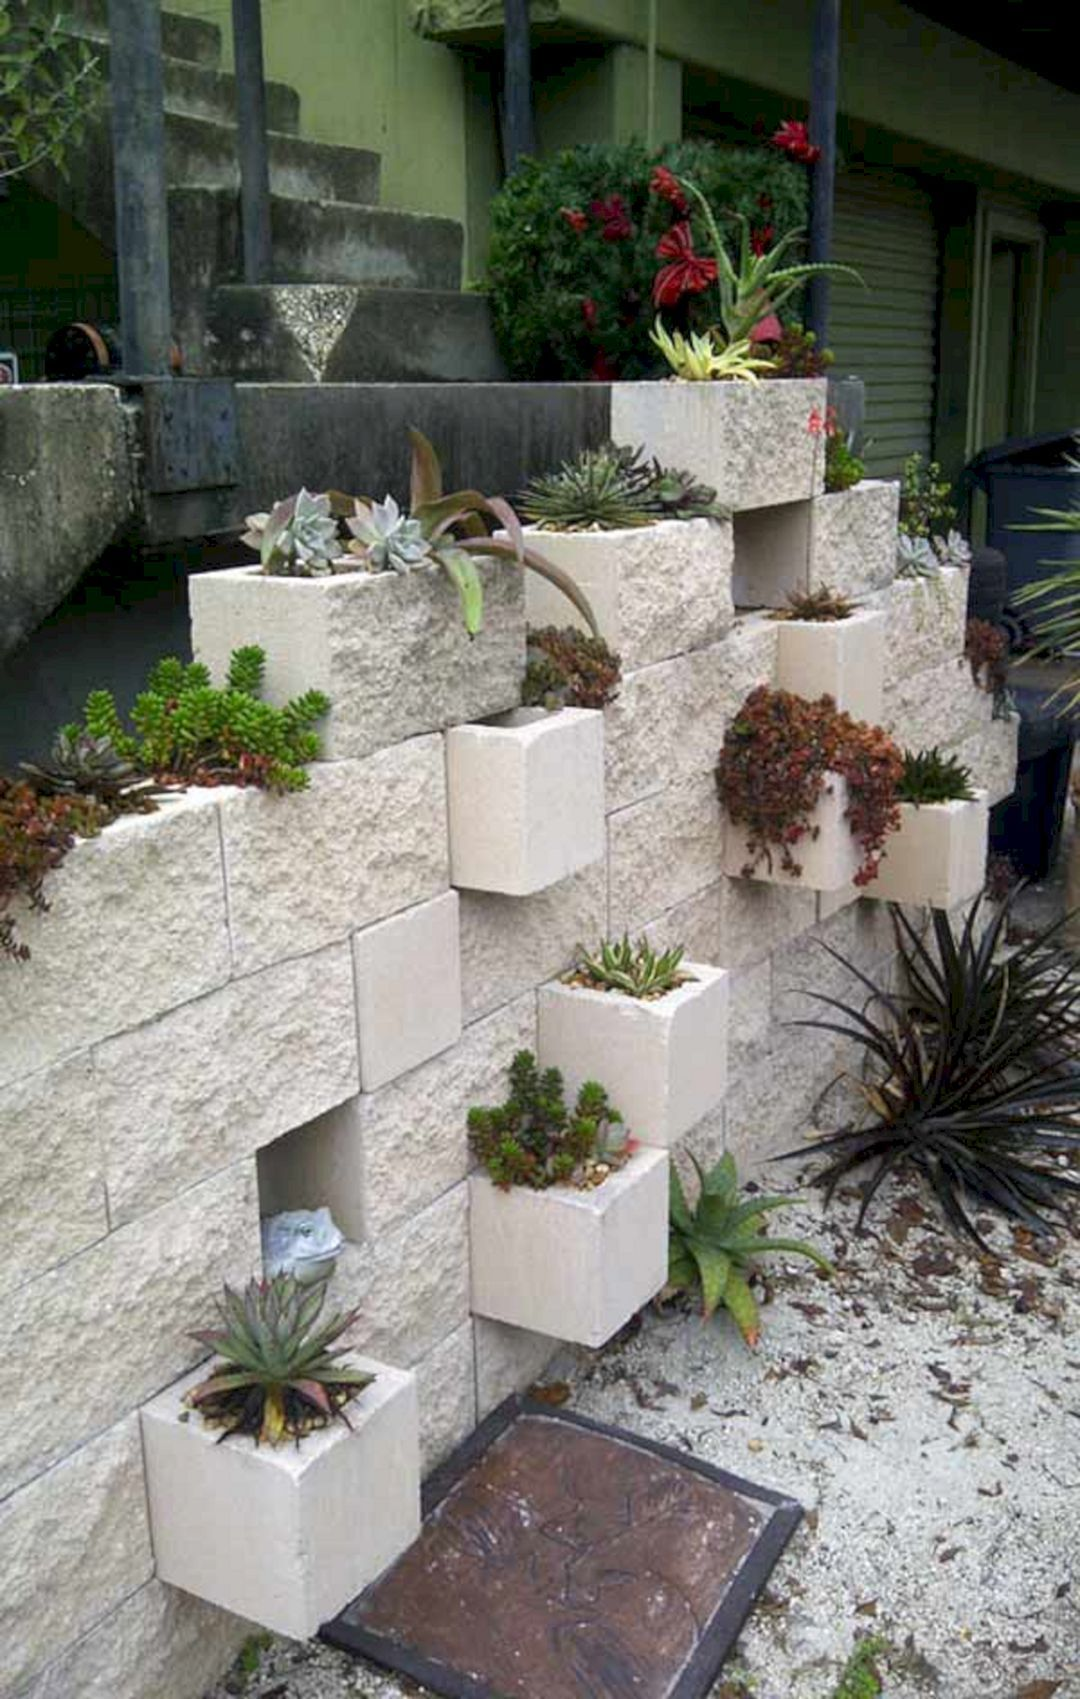 30 Creative And Beautiful Cinder Block Ideas For Your Home ... on Backyard Cinder Block Wall Ideas id=68942